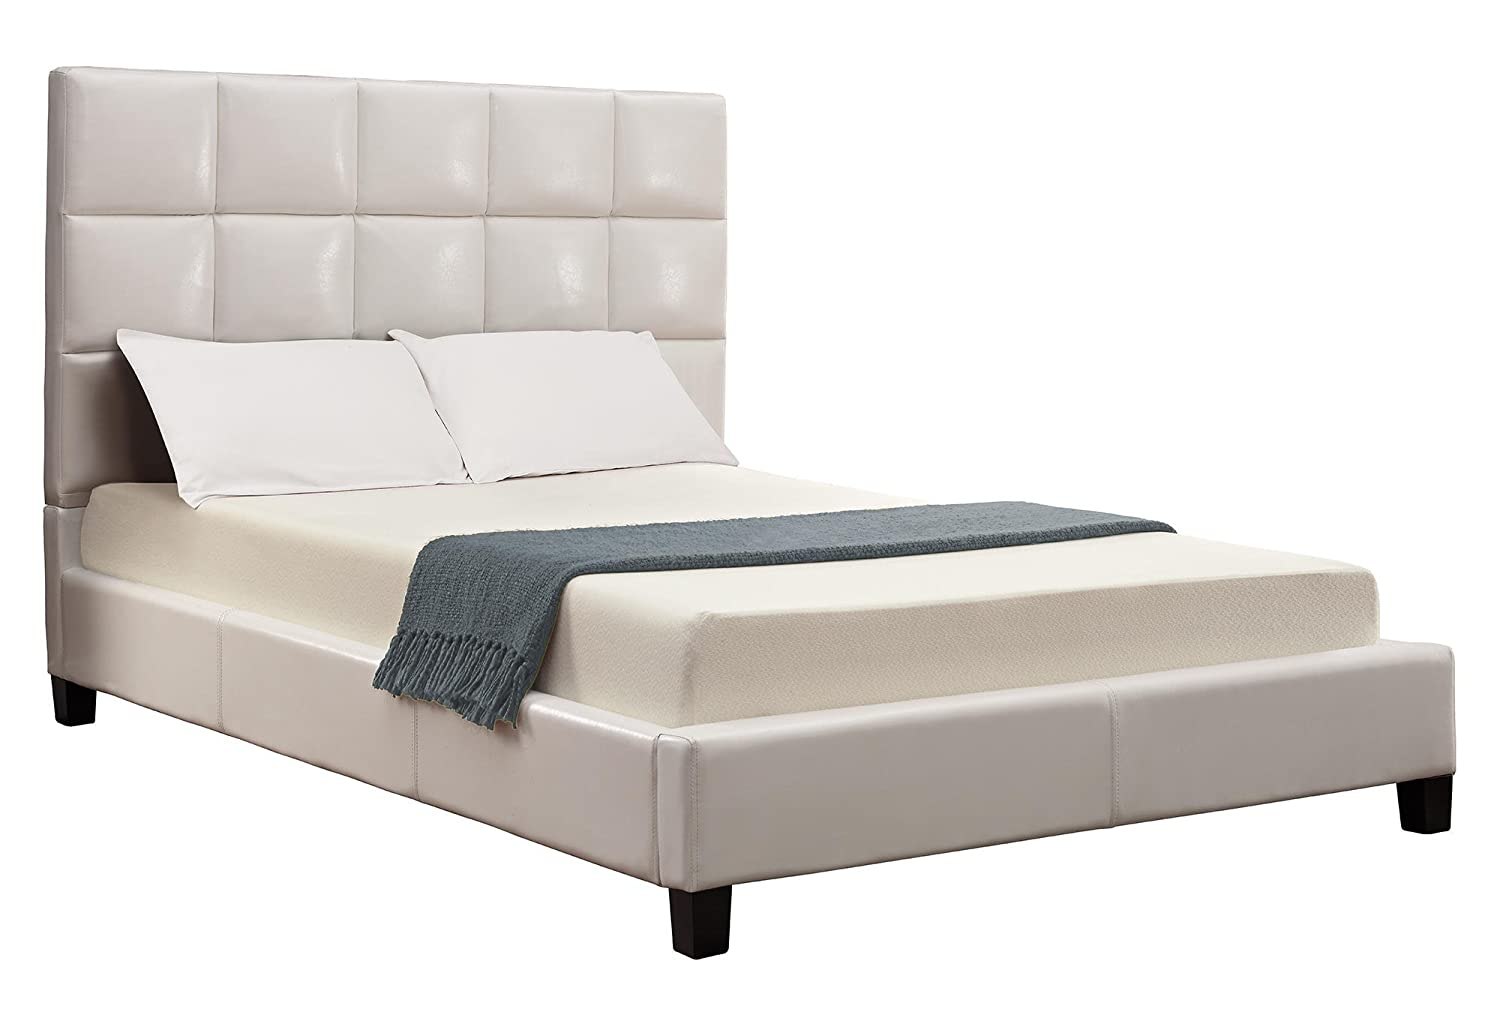 Signature Sleep 8-Inch Twin Memory Foam Mattress